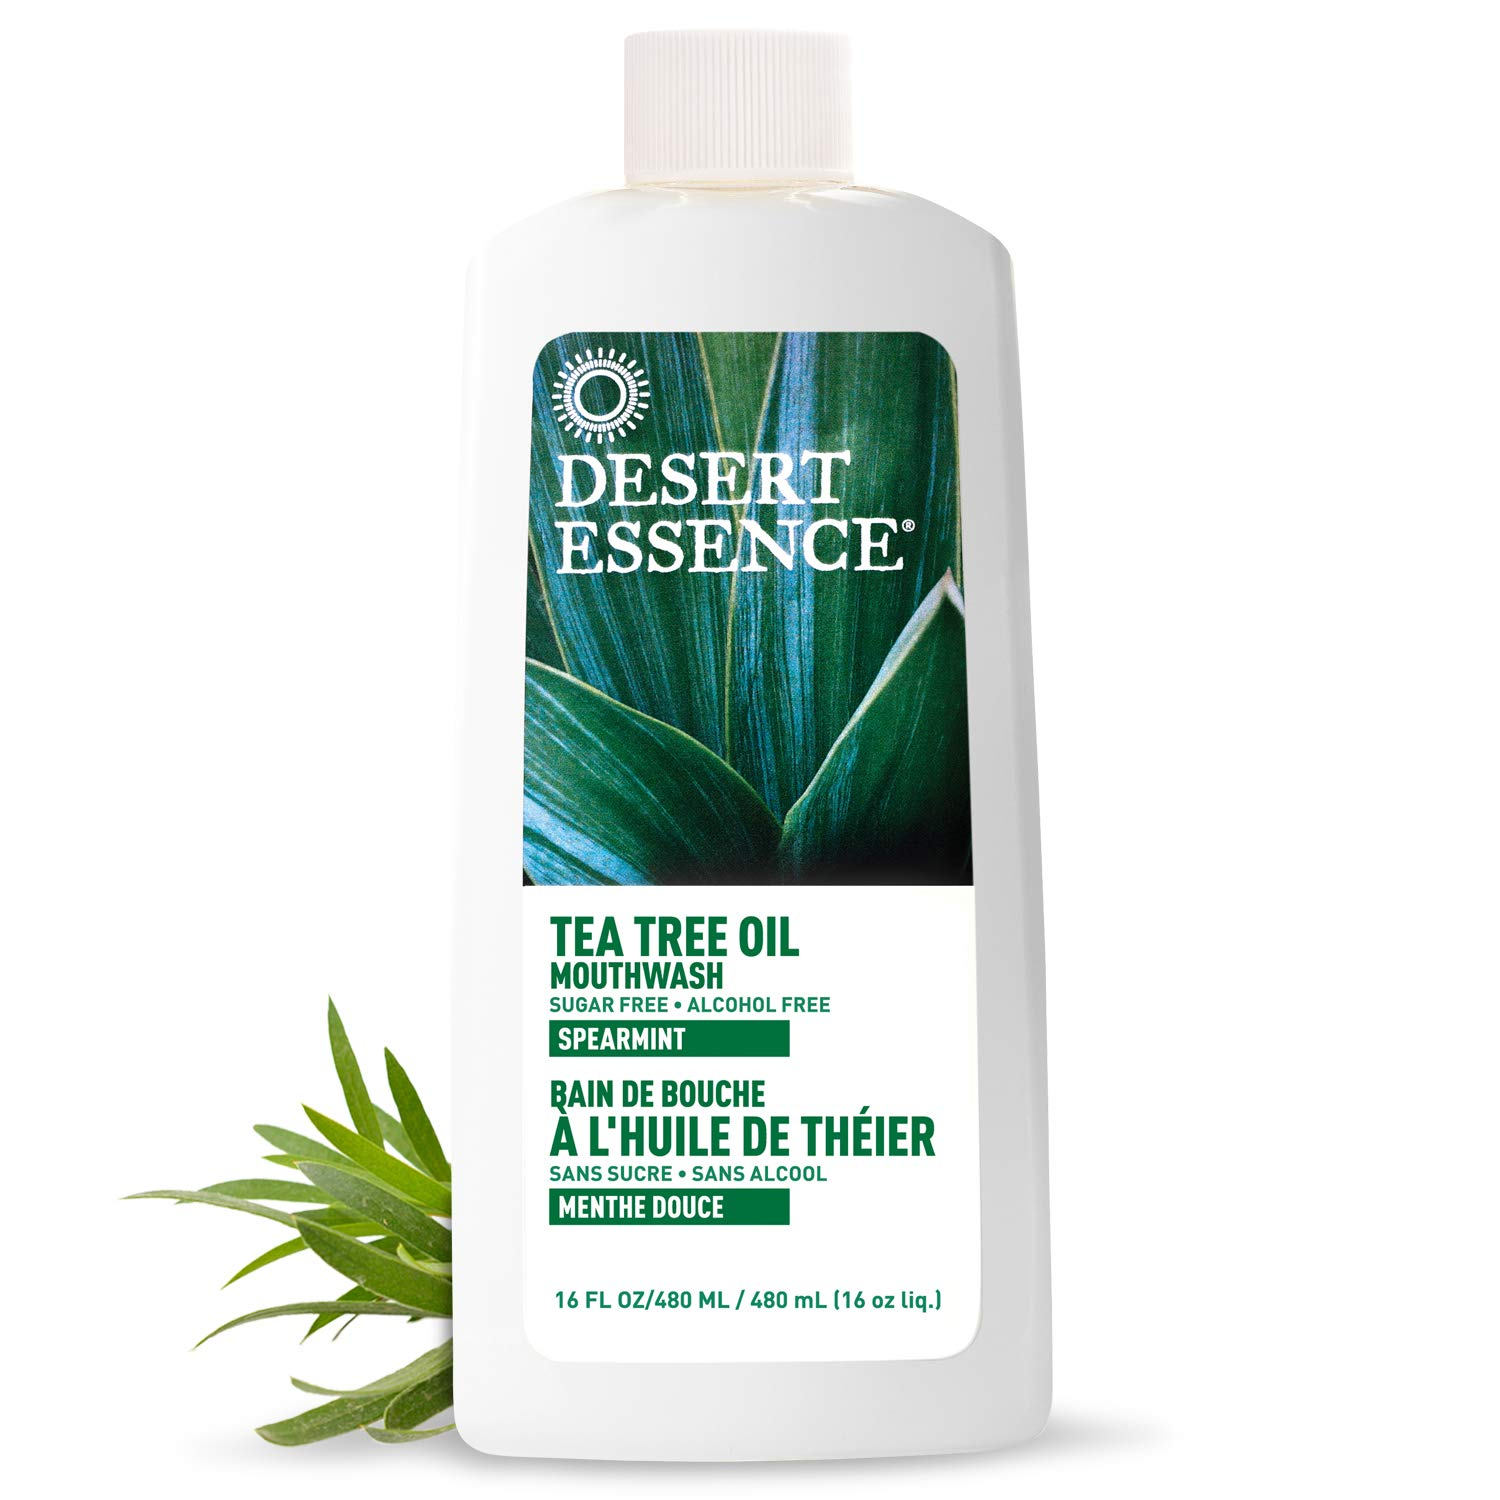 Desert Essence Tea Tree Oil Mouthwash - 16 Fl Oz - Pack of 2 - Natural Refreshing - Spearmint Flavor - Helps Reduce Plaque Buildup - Refreshes Mouth & Gums - Vitamin C - Oral Care - No Parabens